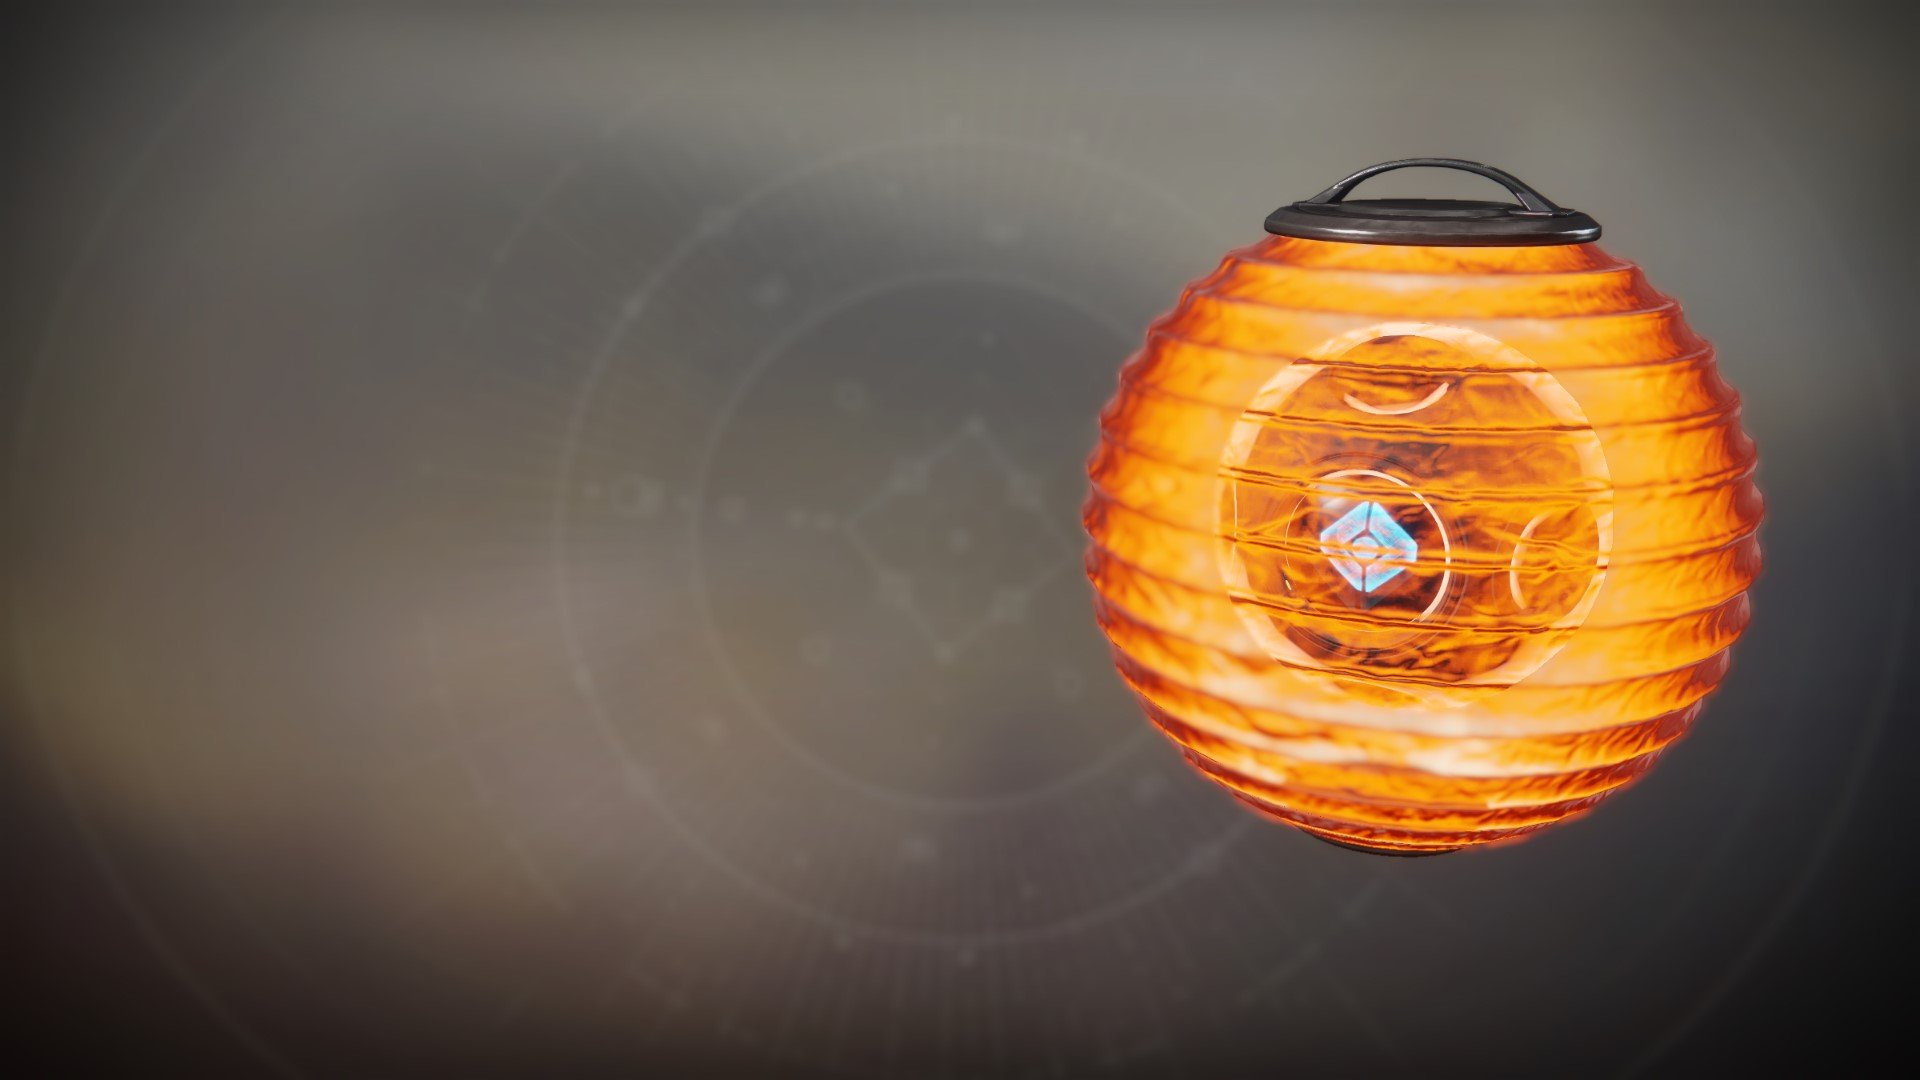 An in-game render of the Lampion Shell.